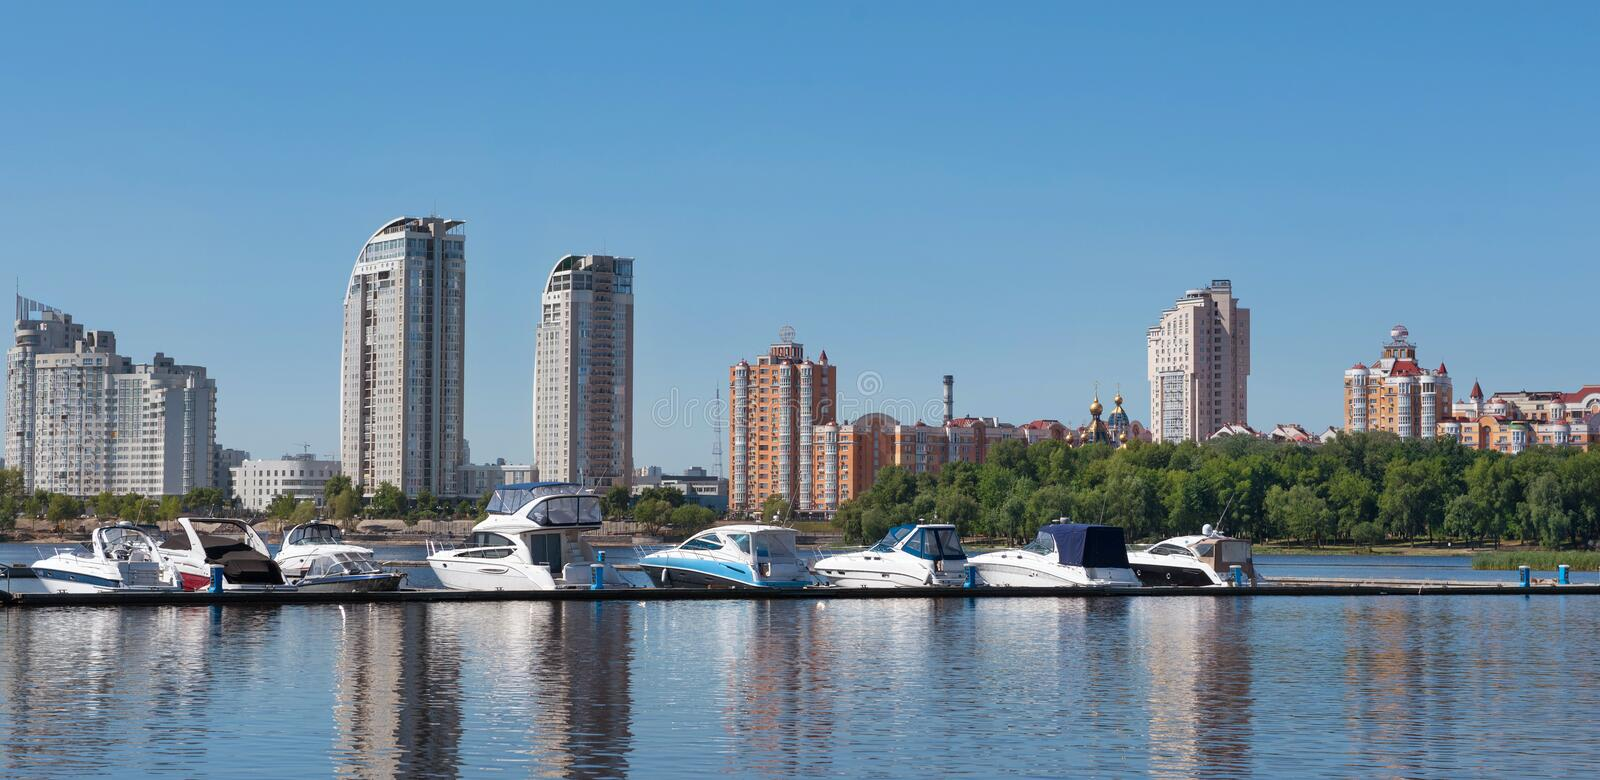 Kiev, Ukraine - June 01, 2018 : Sailing yachts and private boats on a pier in the river. yachts in the gulf in river port in the stock photography